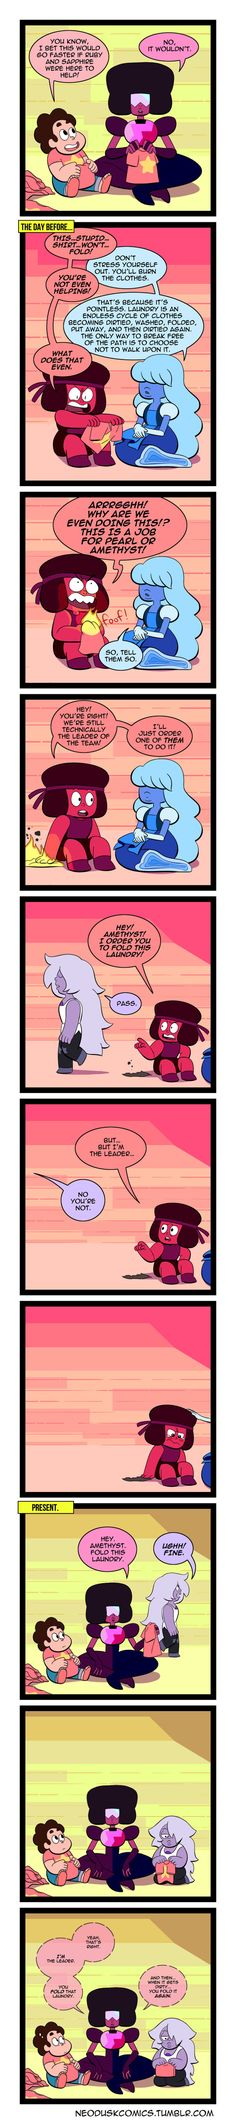 Steven Universe: One Head is Better Than Two by Neodusk